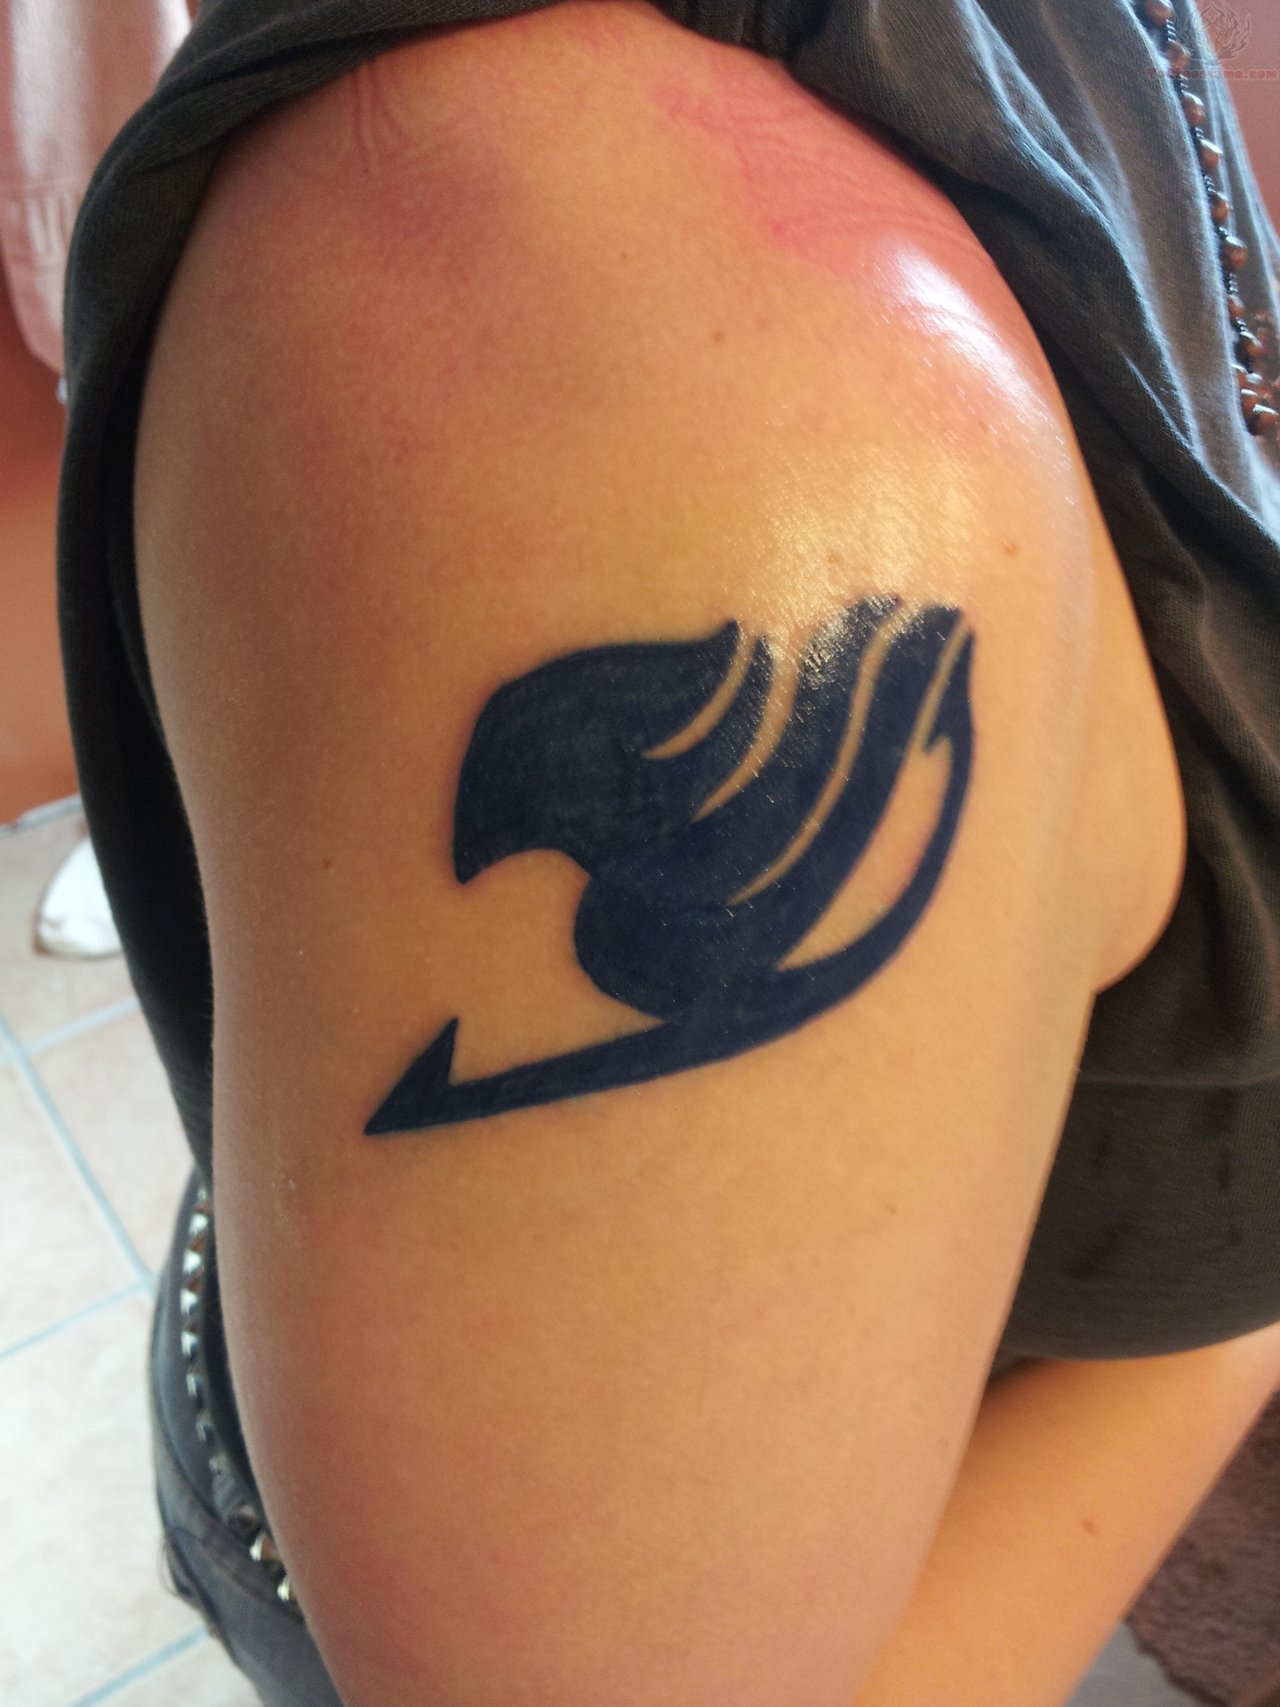 Fairy Tail Tattoo On Shoulder